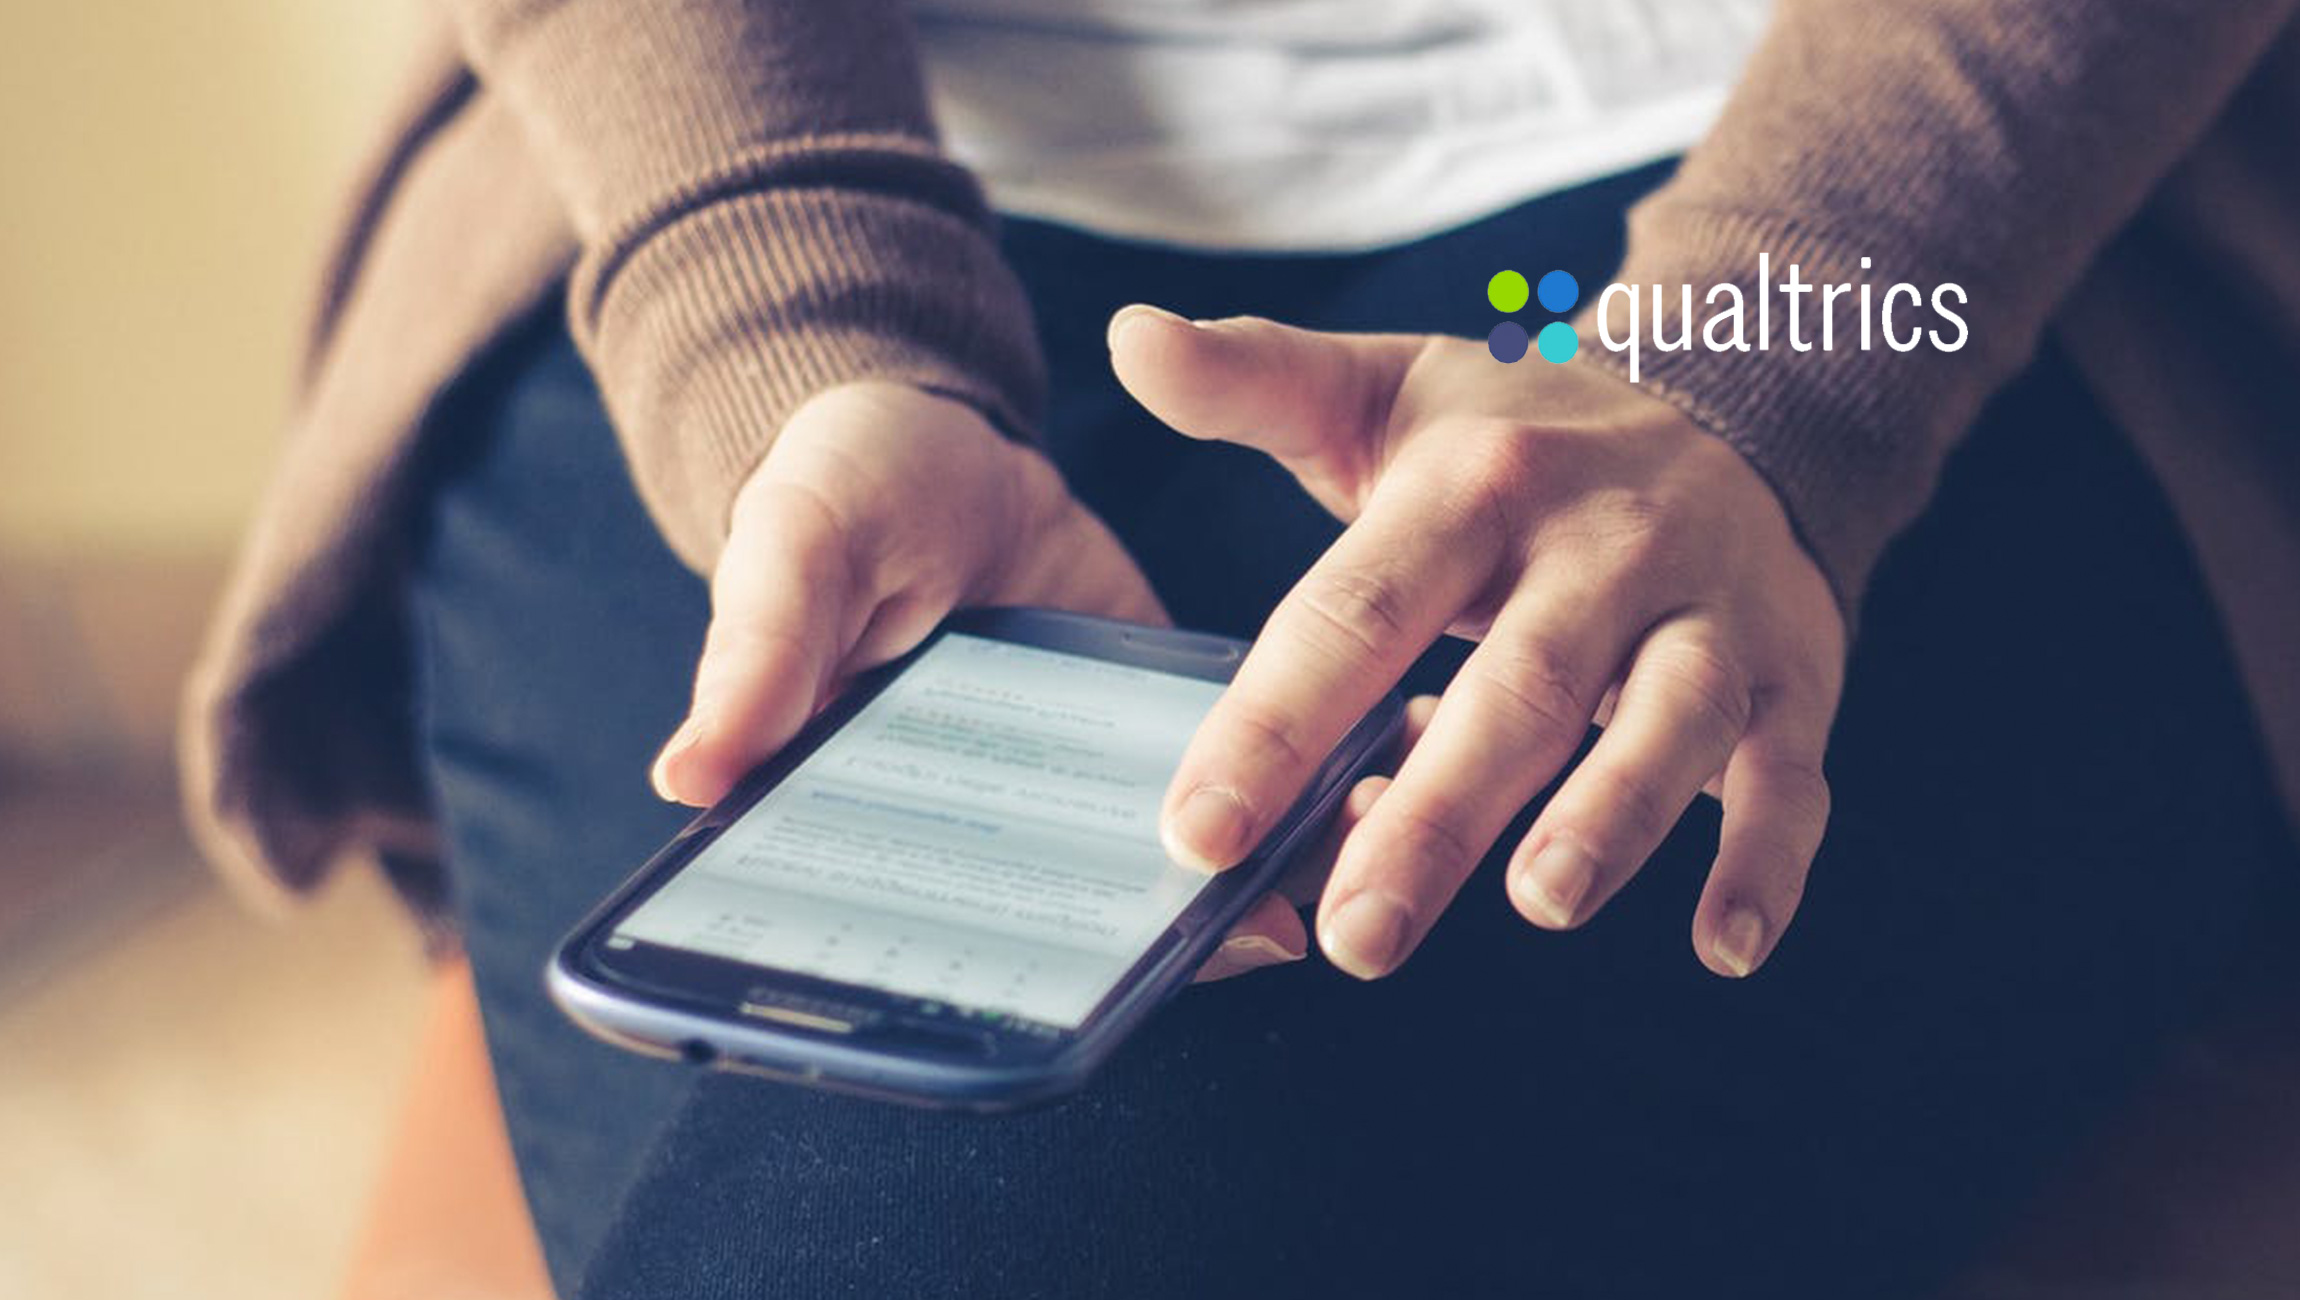 Qualtrics Introduces Mobile In-App Software Development Kit for Leading Customer Experience Platform